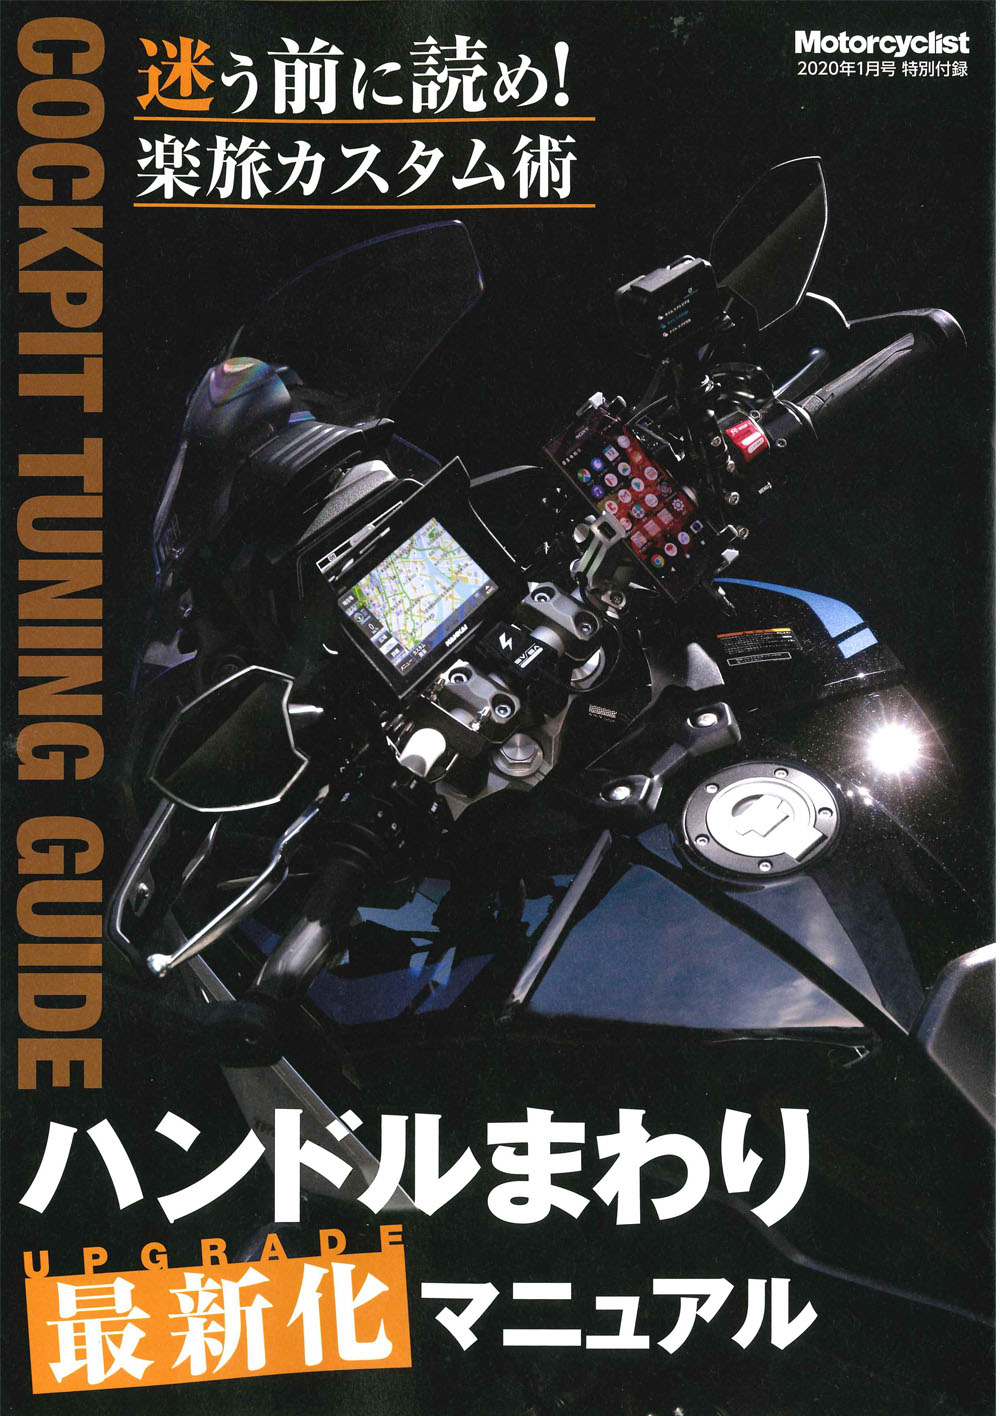 【COCKPIT TUNING GUIDE(Motorcyclist特別付録)掲載】 MOUNTSYSTEM&POWERSYSTEM